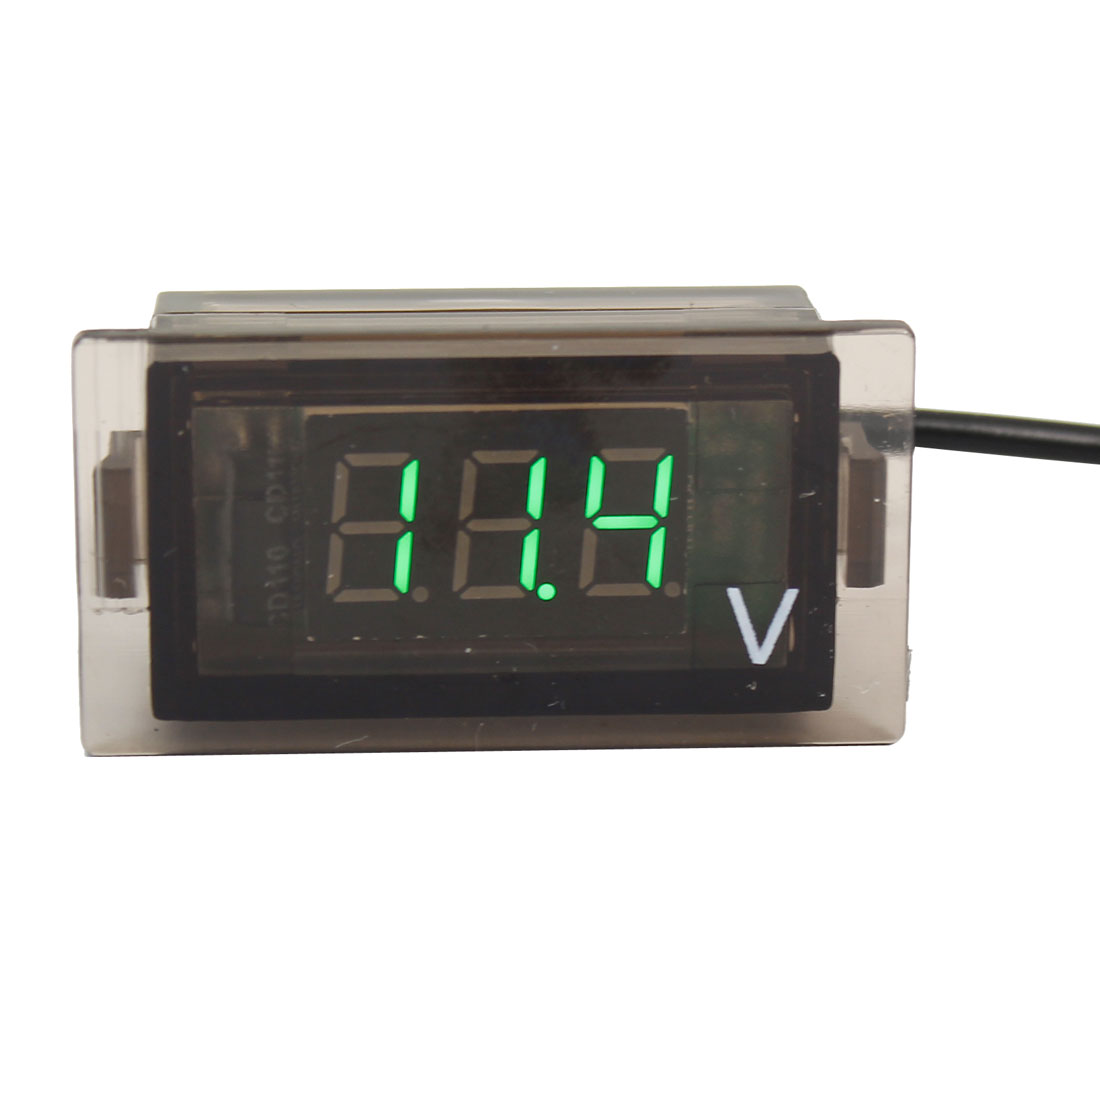 3 Number Green LED Digital Voltmeter Meter Gauge DC 3.5-30V for Motorcycle